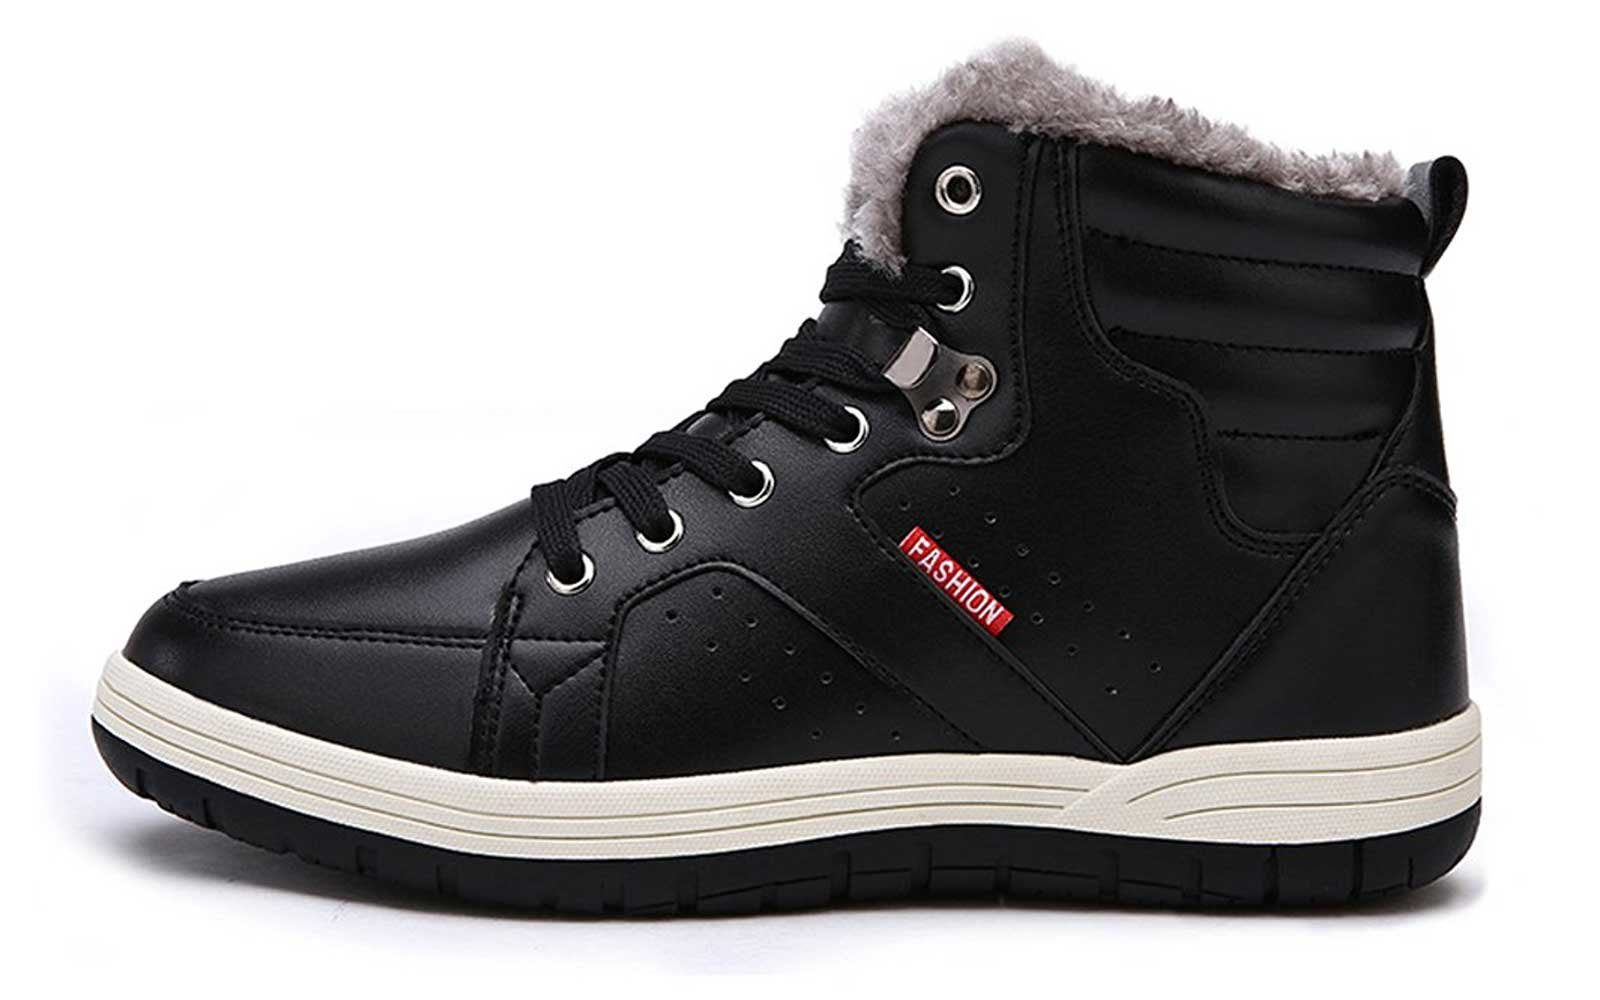 Ceyue Men's Leather Snow Boots